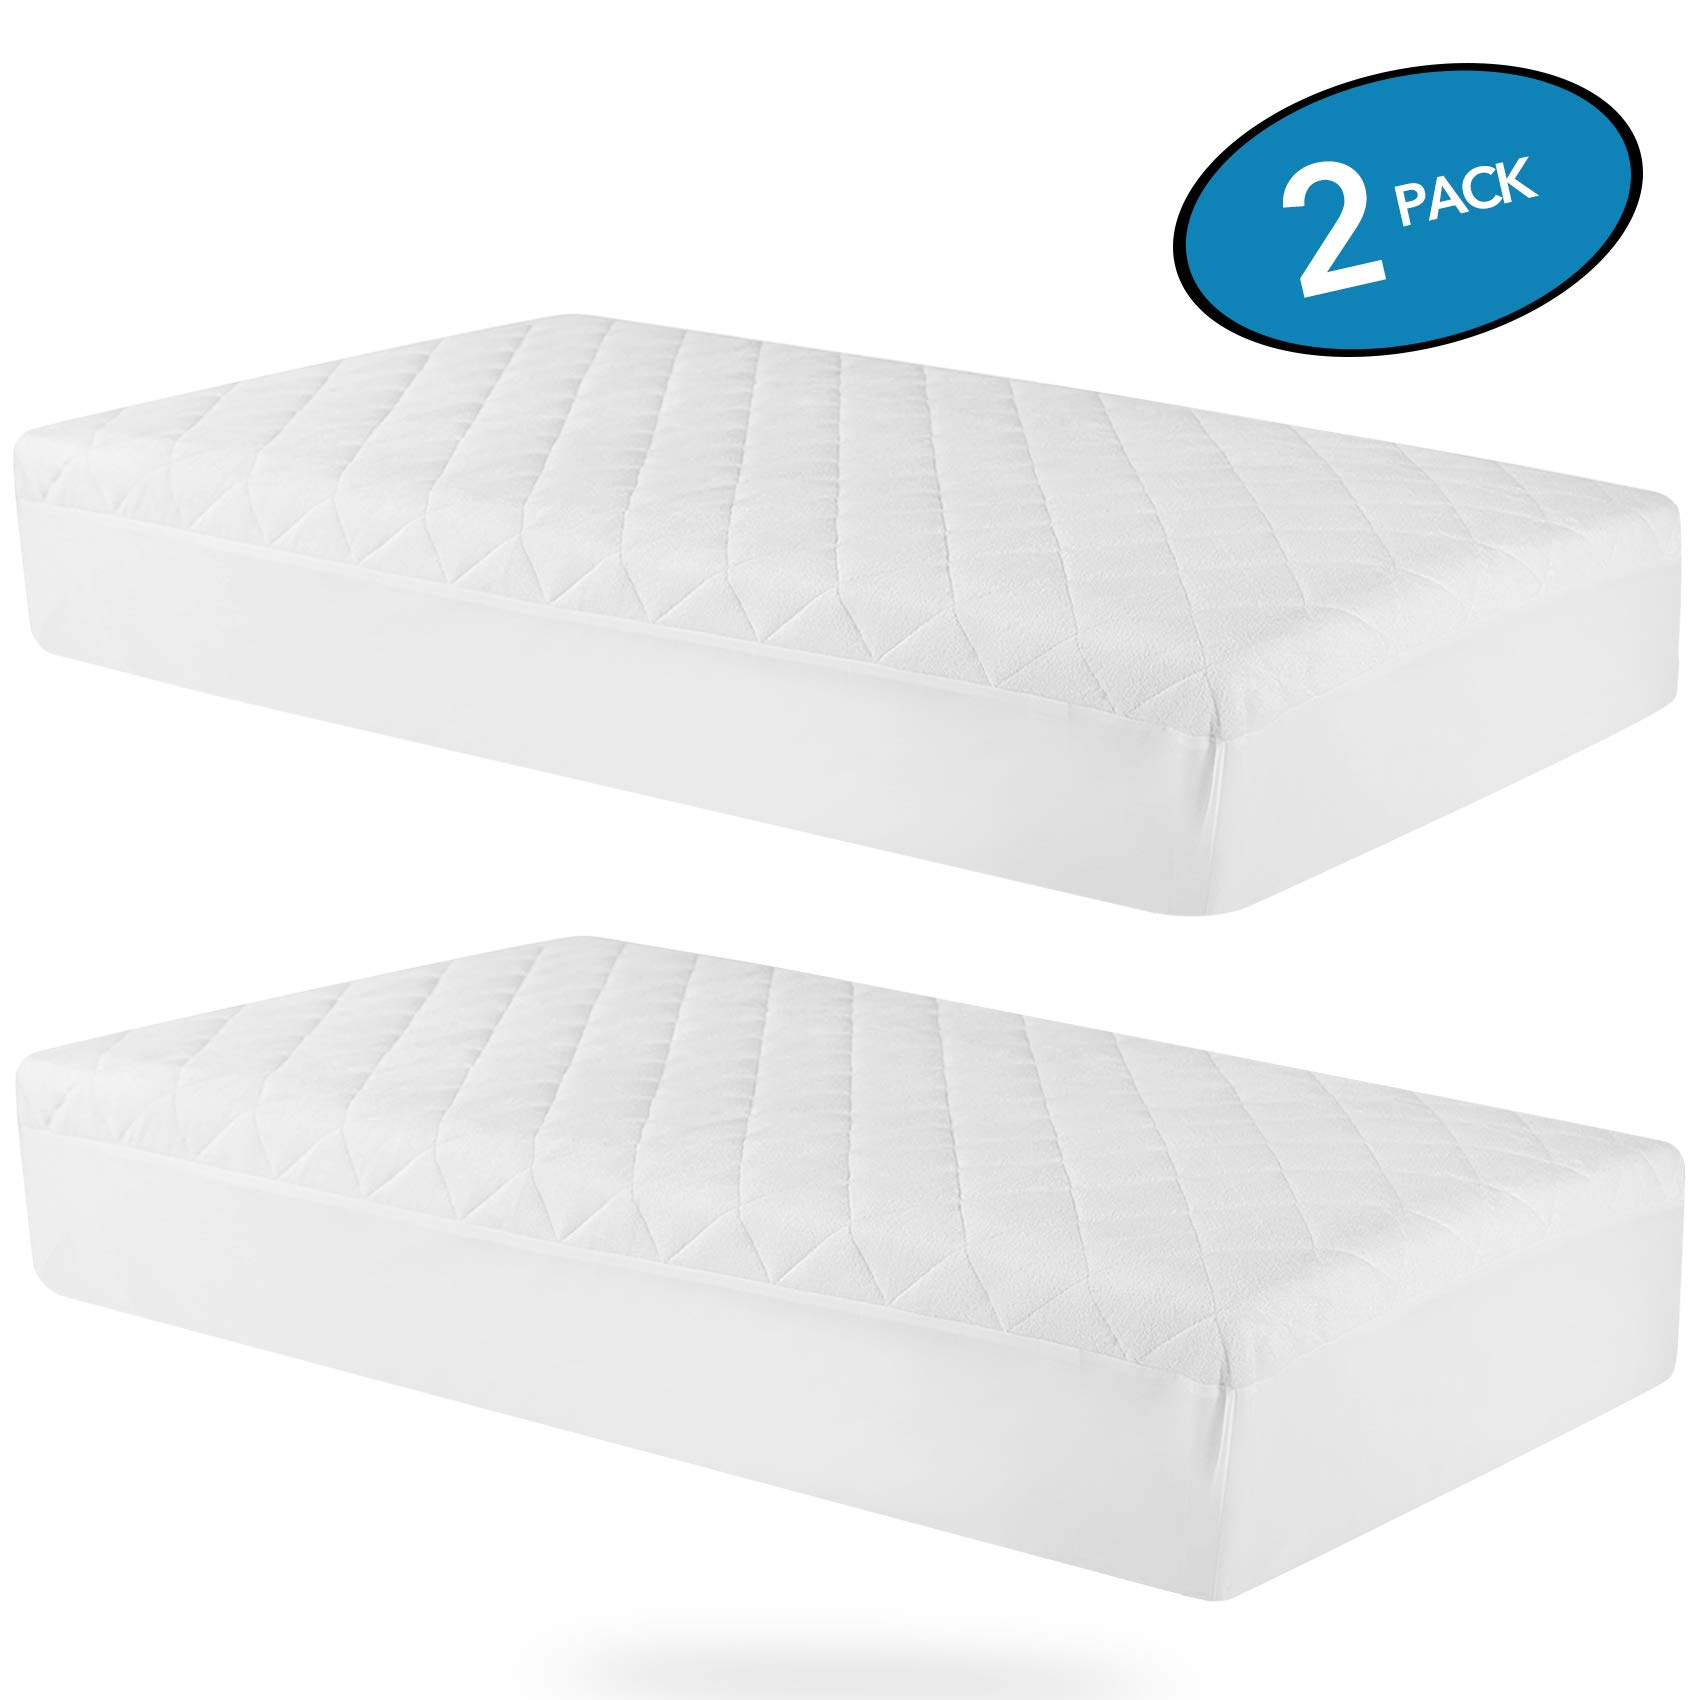 MoMA Waterproof Crib Mattress Cover (Set of 2) - 52x28'' White Crib Mattress Protector - Soft Fitted Baby Crib Mattress Pad with 9-inch Pocket - Hypoallergenic Bamboo Fiber Toddler Mattress Pad by MoMA